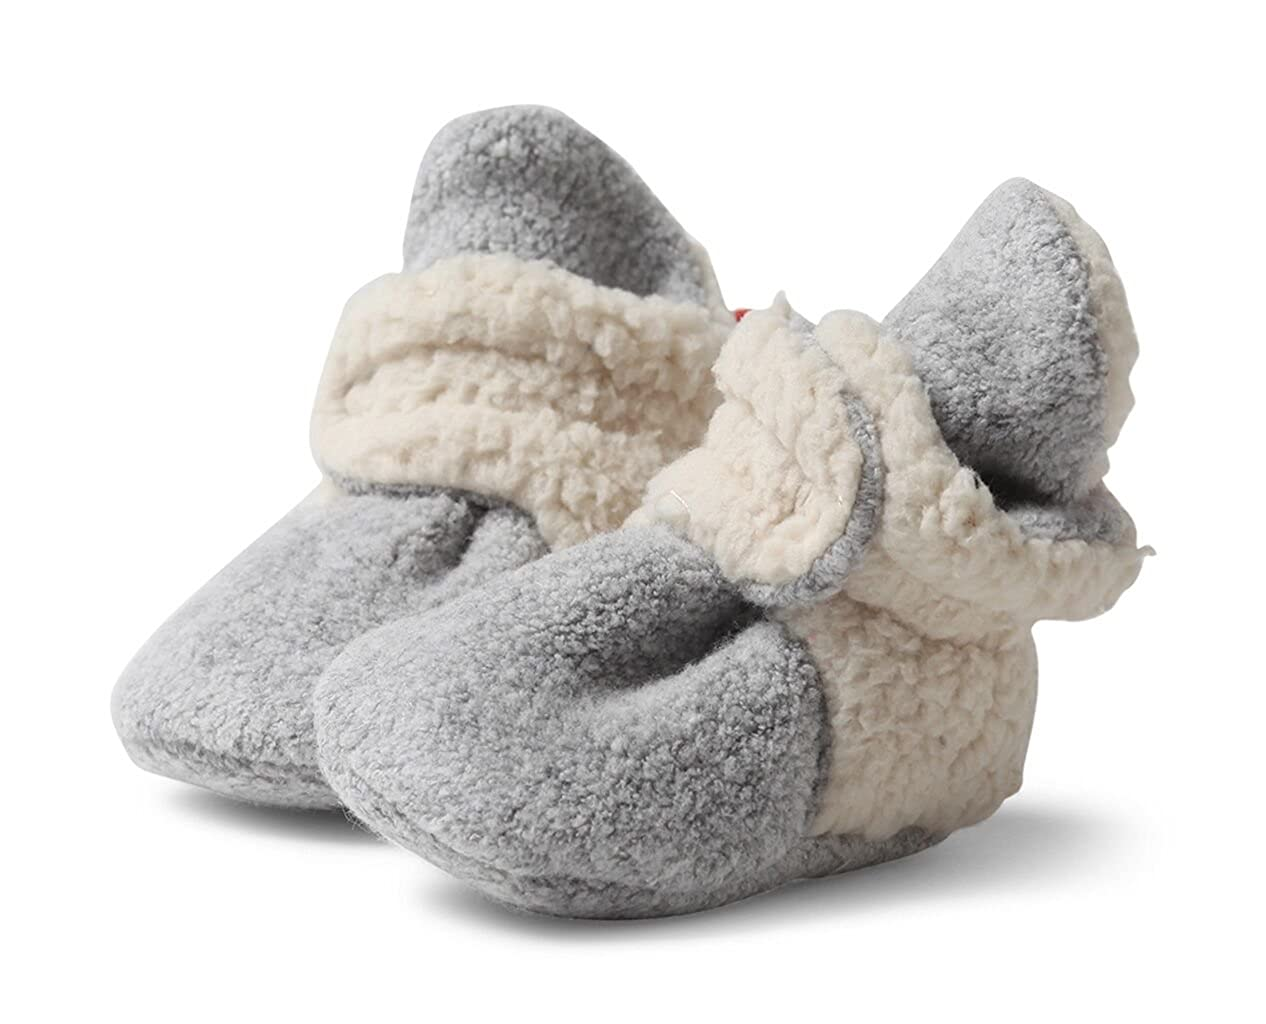 【国際ブランド】 Zutano B01EU3S62Q Cozie Gray Baby Booties Furry Heather Gray 3ヶ月 Heather Gray 3ヶ月 3 Months ヘザーグレー B01EU3S62Q, SOLT AND PEPPER:a01e8107 --- ciadaterra.com